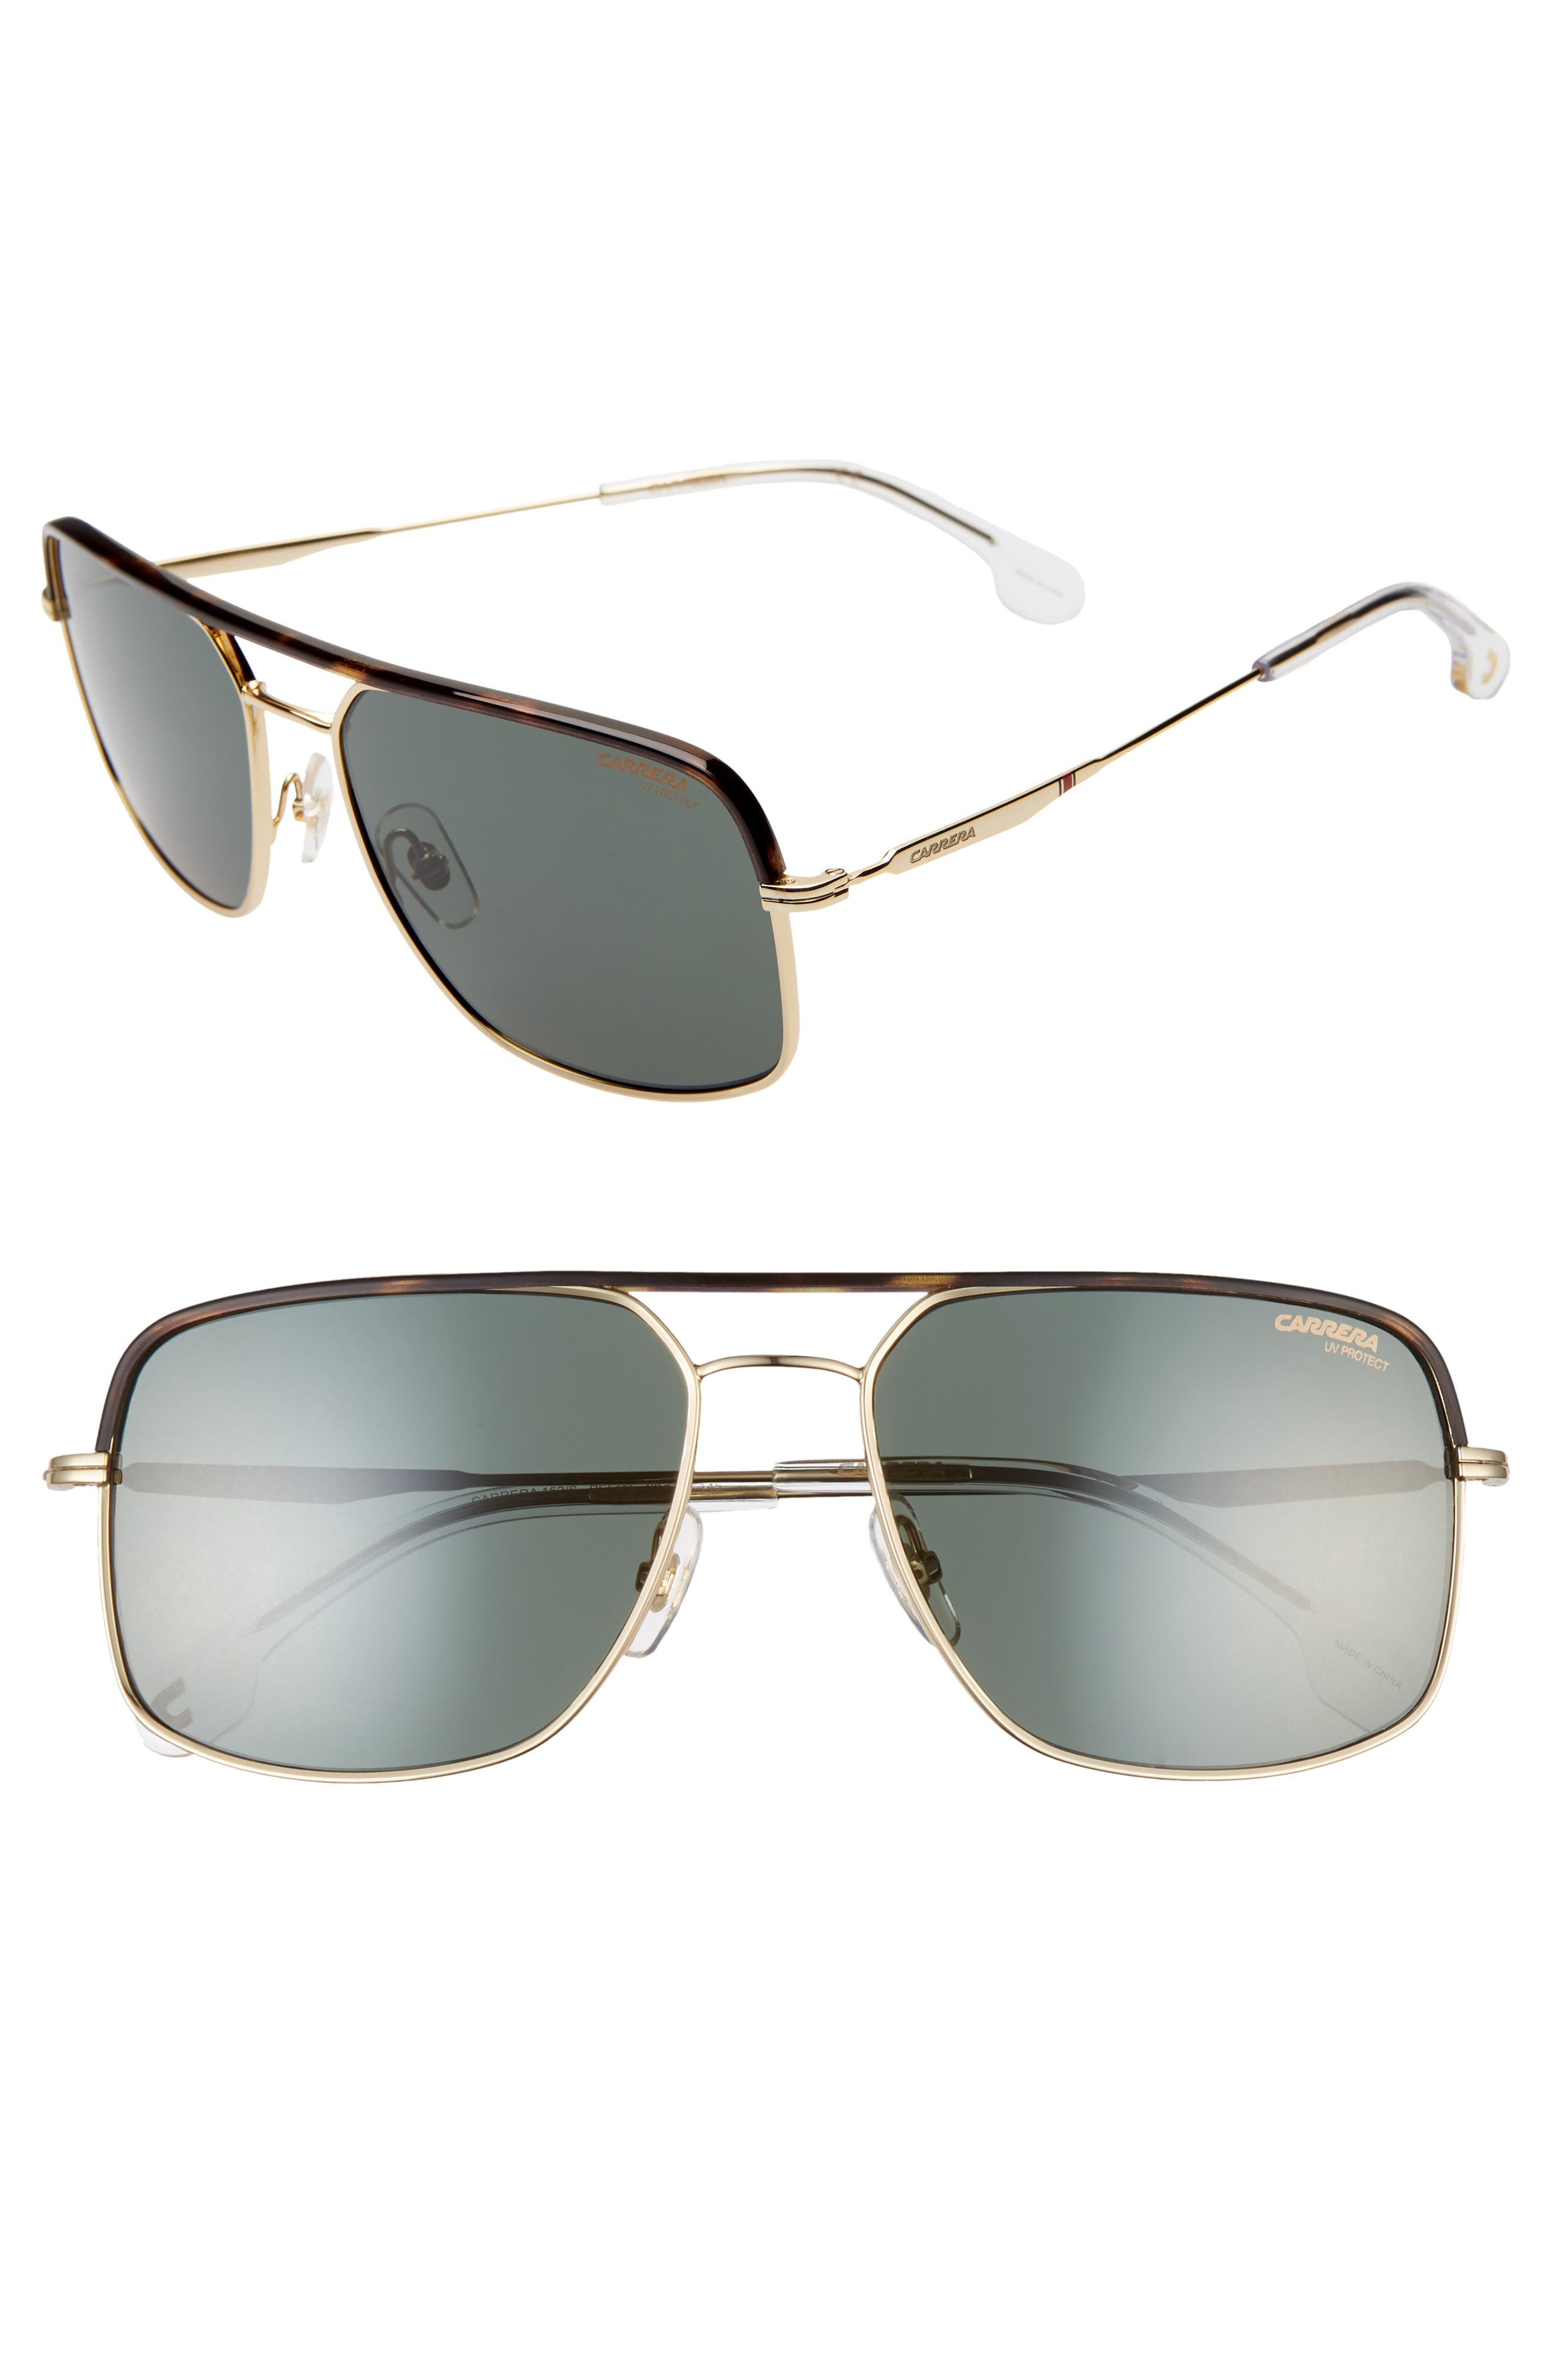 Carrera Eyewear 60Mm Gradient Aviator Sunglasses - Gold Green